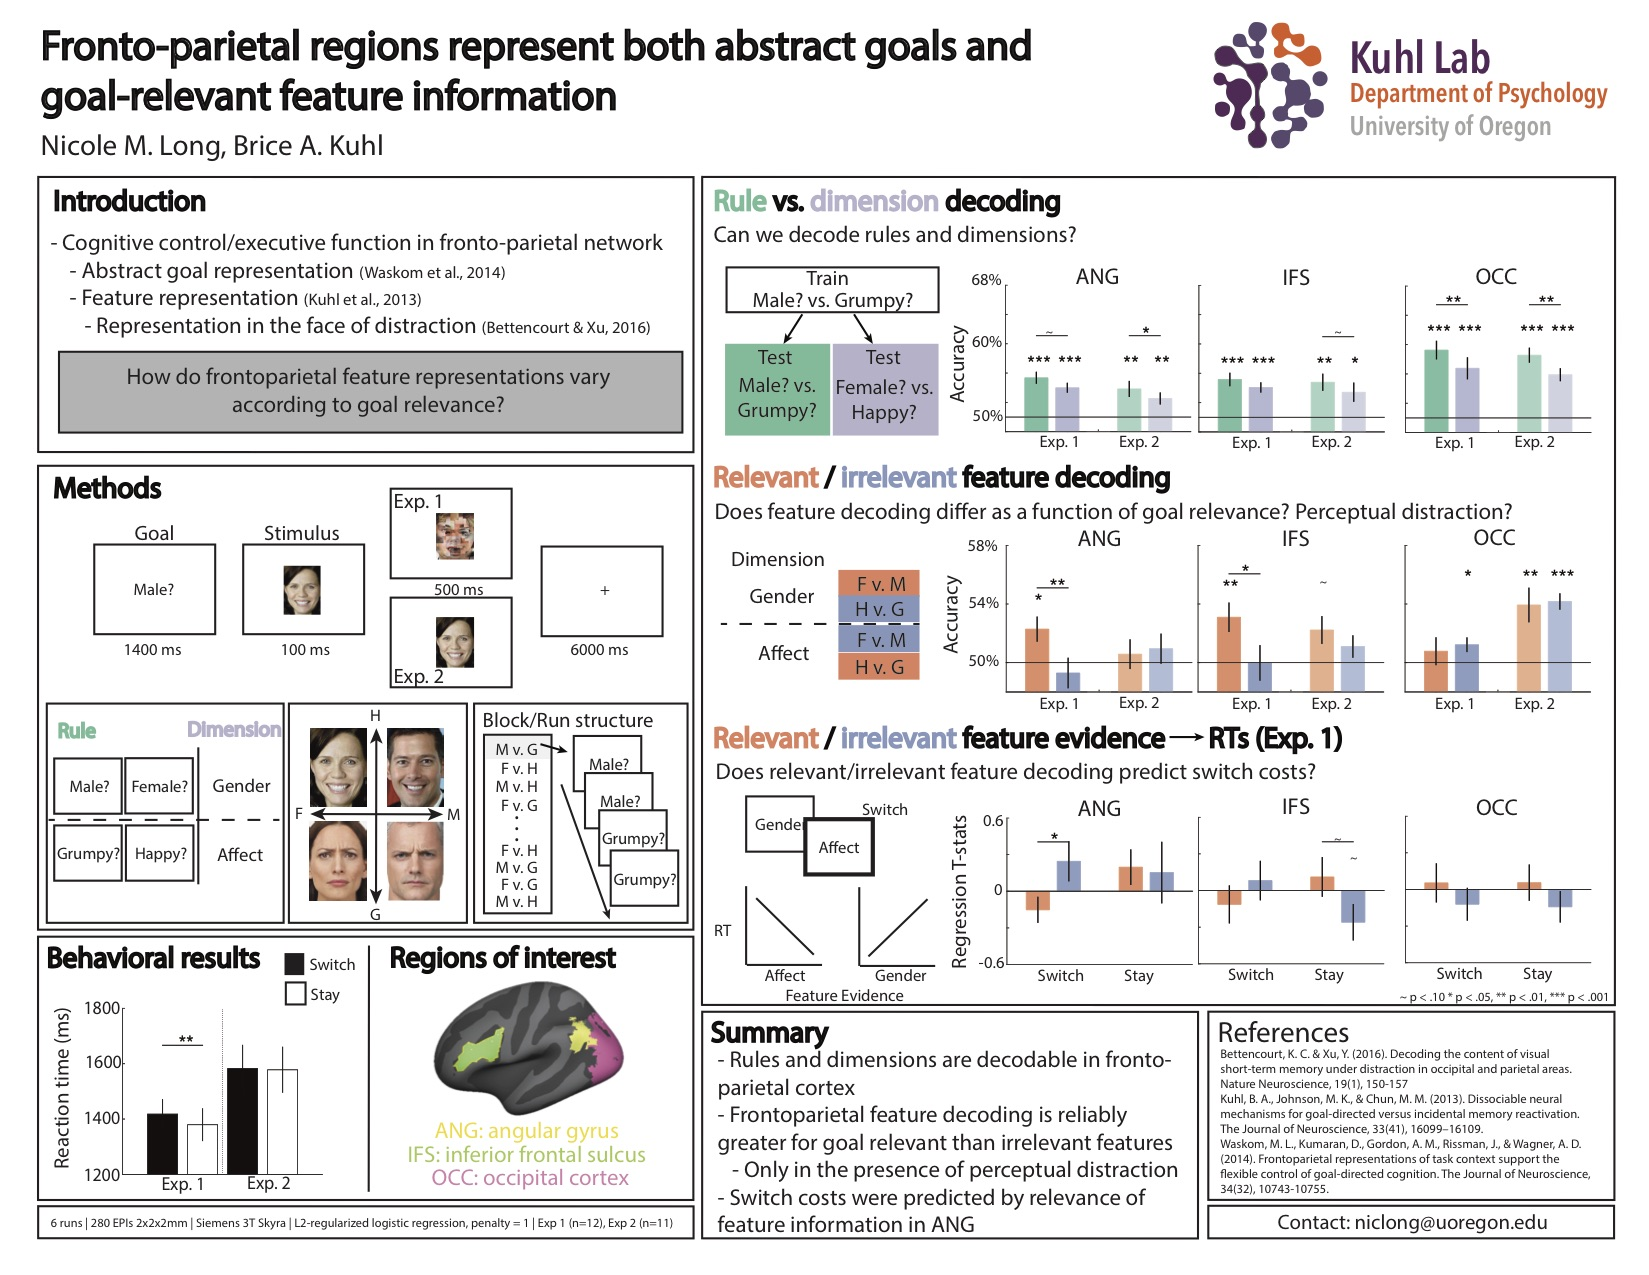 Fronto-parietal regions represent both abstract goals and goal-relevant feature information